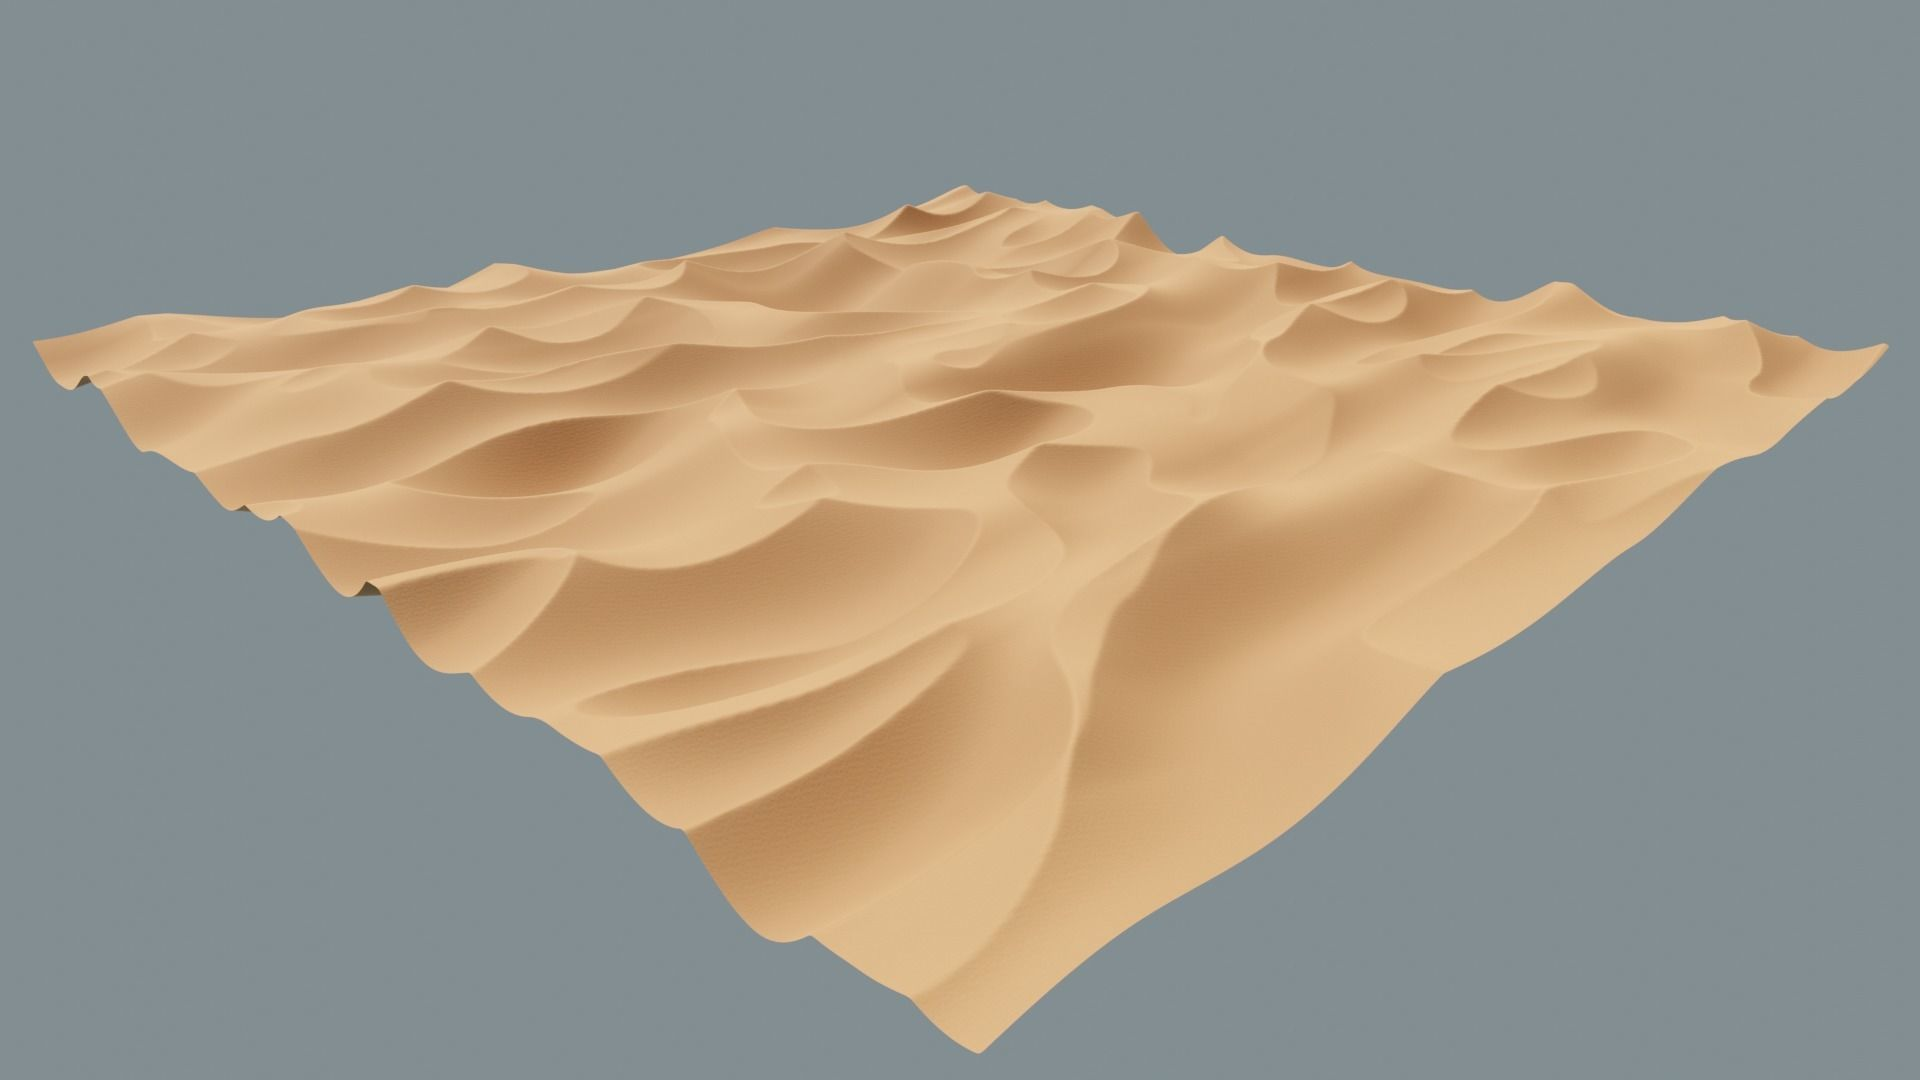 High-Poly Desert Sand Dune Landscape Model